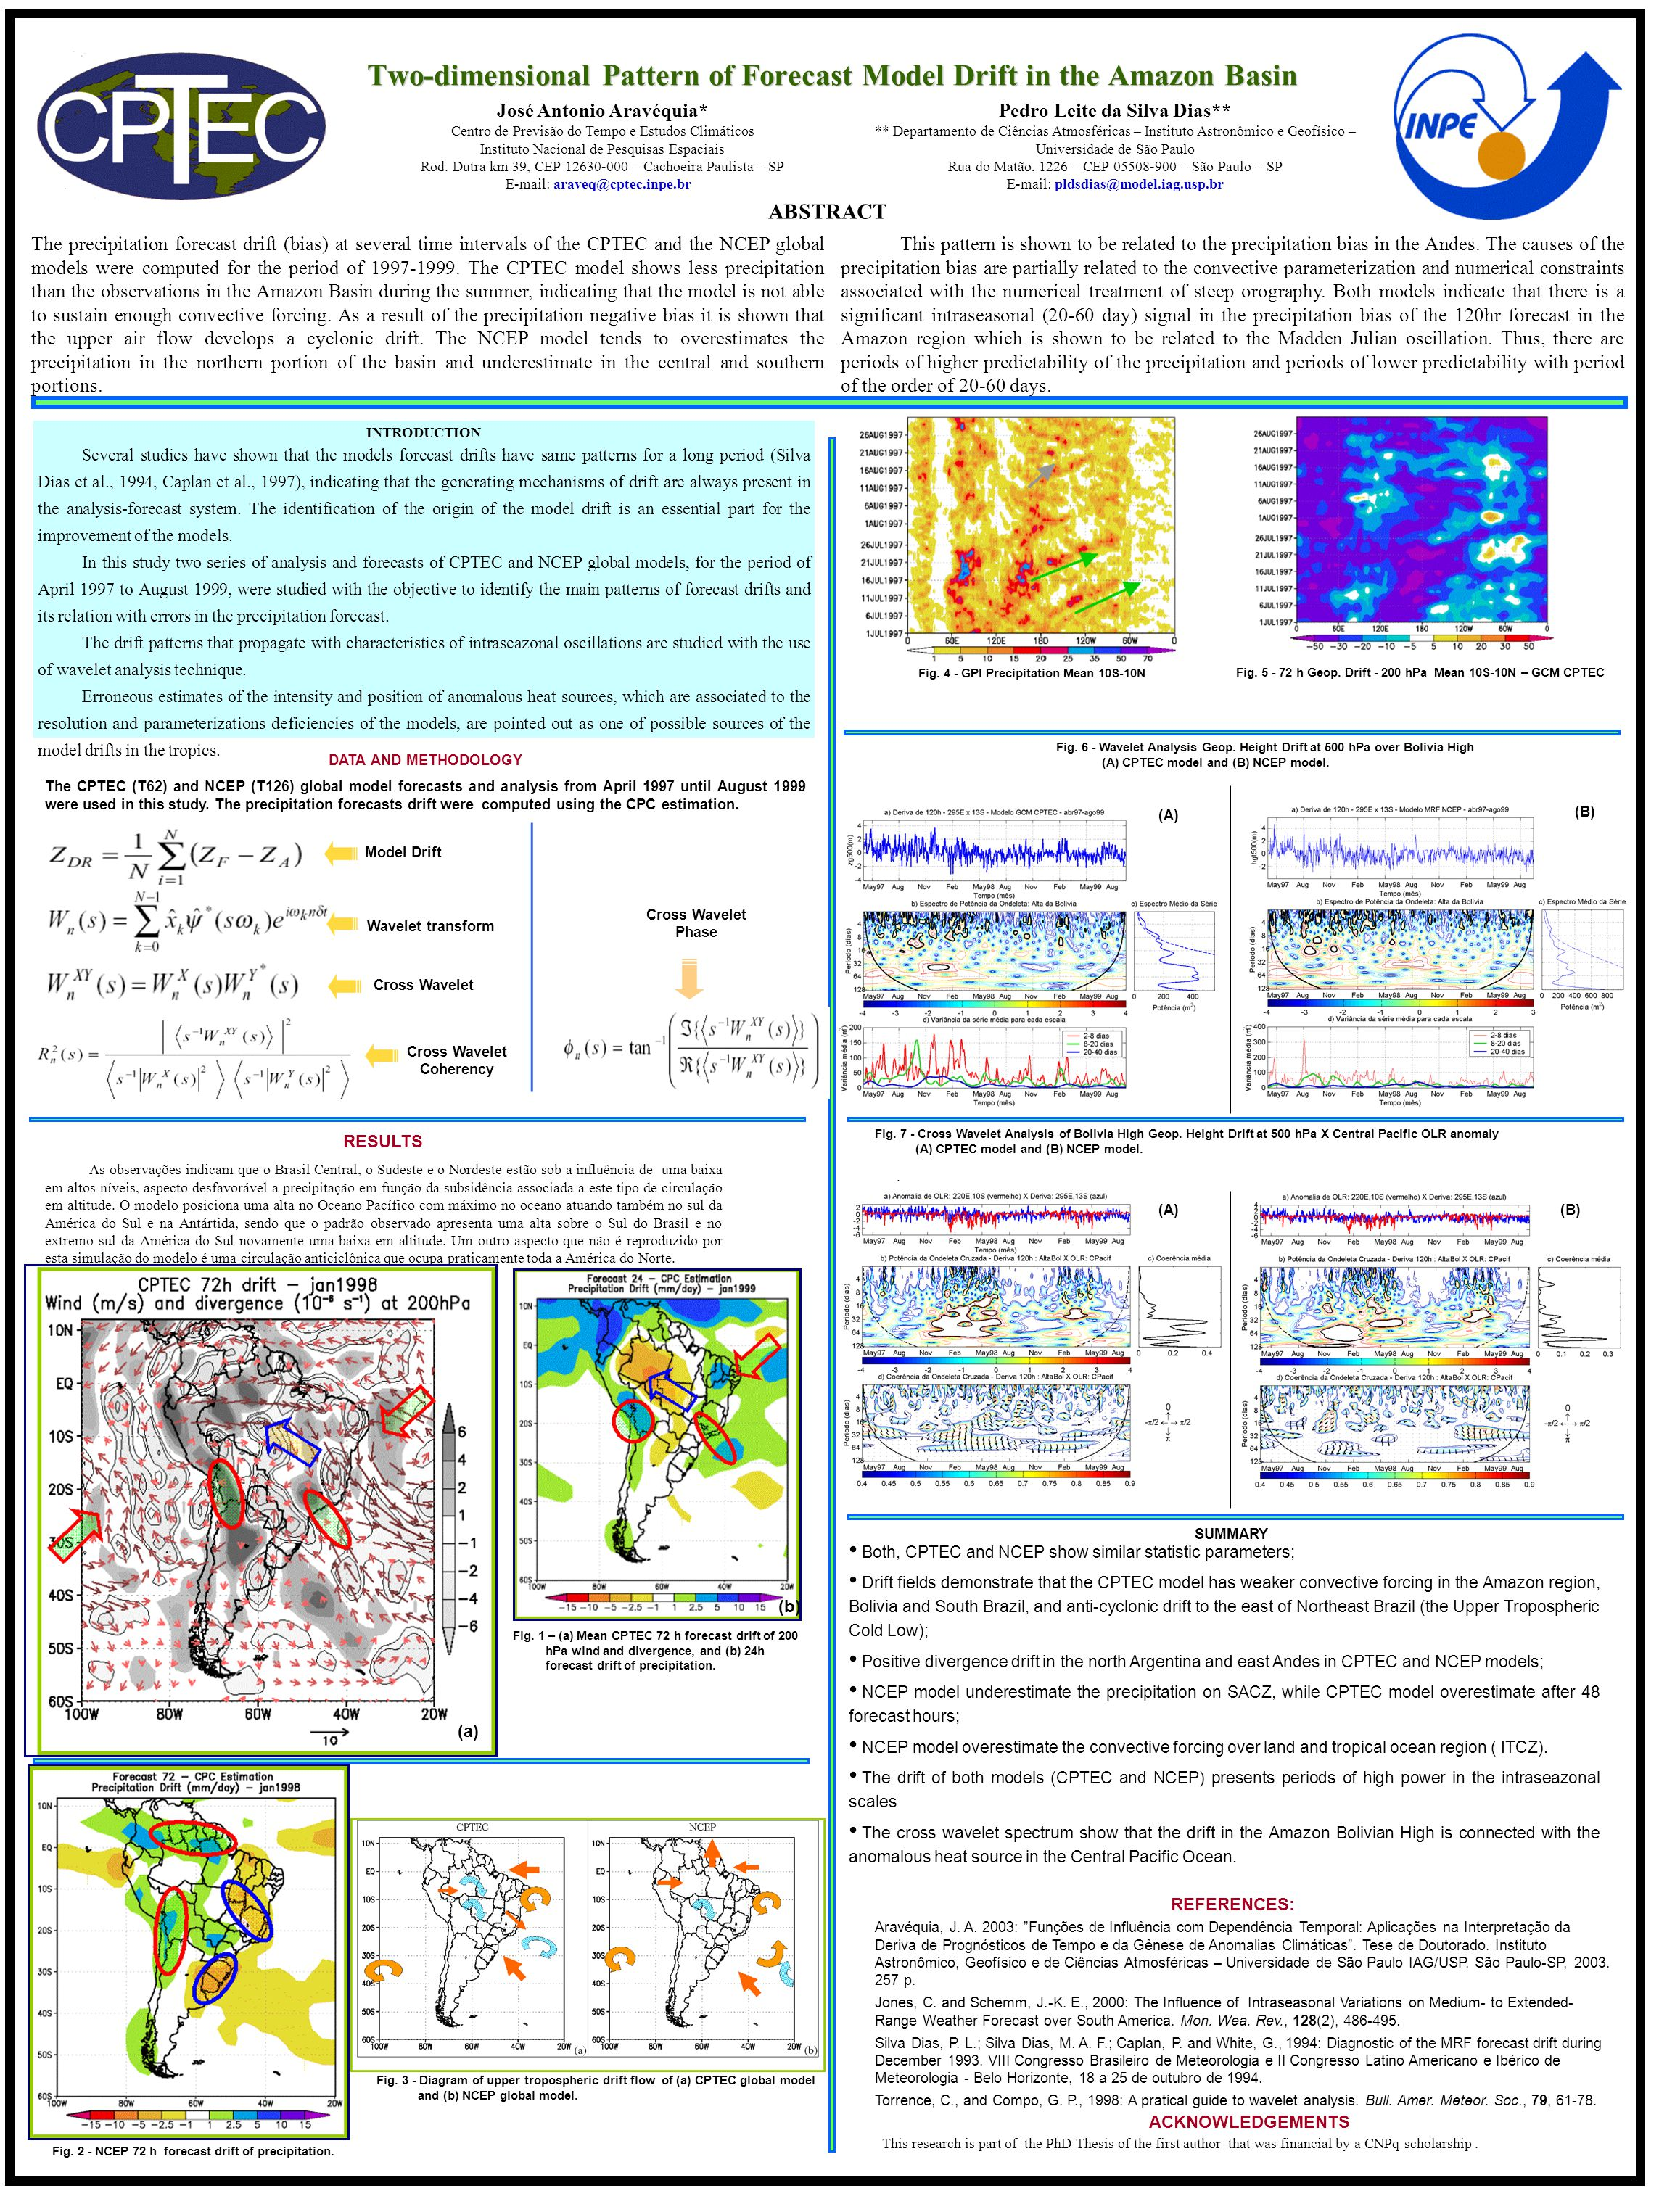 Two-dimensional Pattern of Forecast Model Drift in the Amazon Basin The precipitation forecast drift (bias) at several time intervals of the CPTEC and the NCEP global models were computed for the period of 1997-1999.